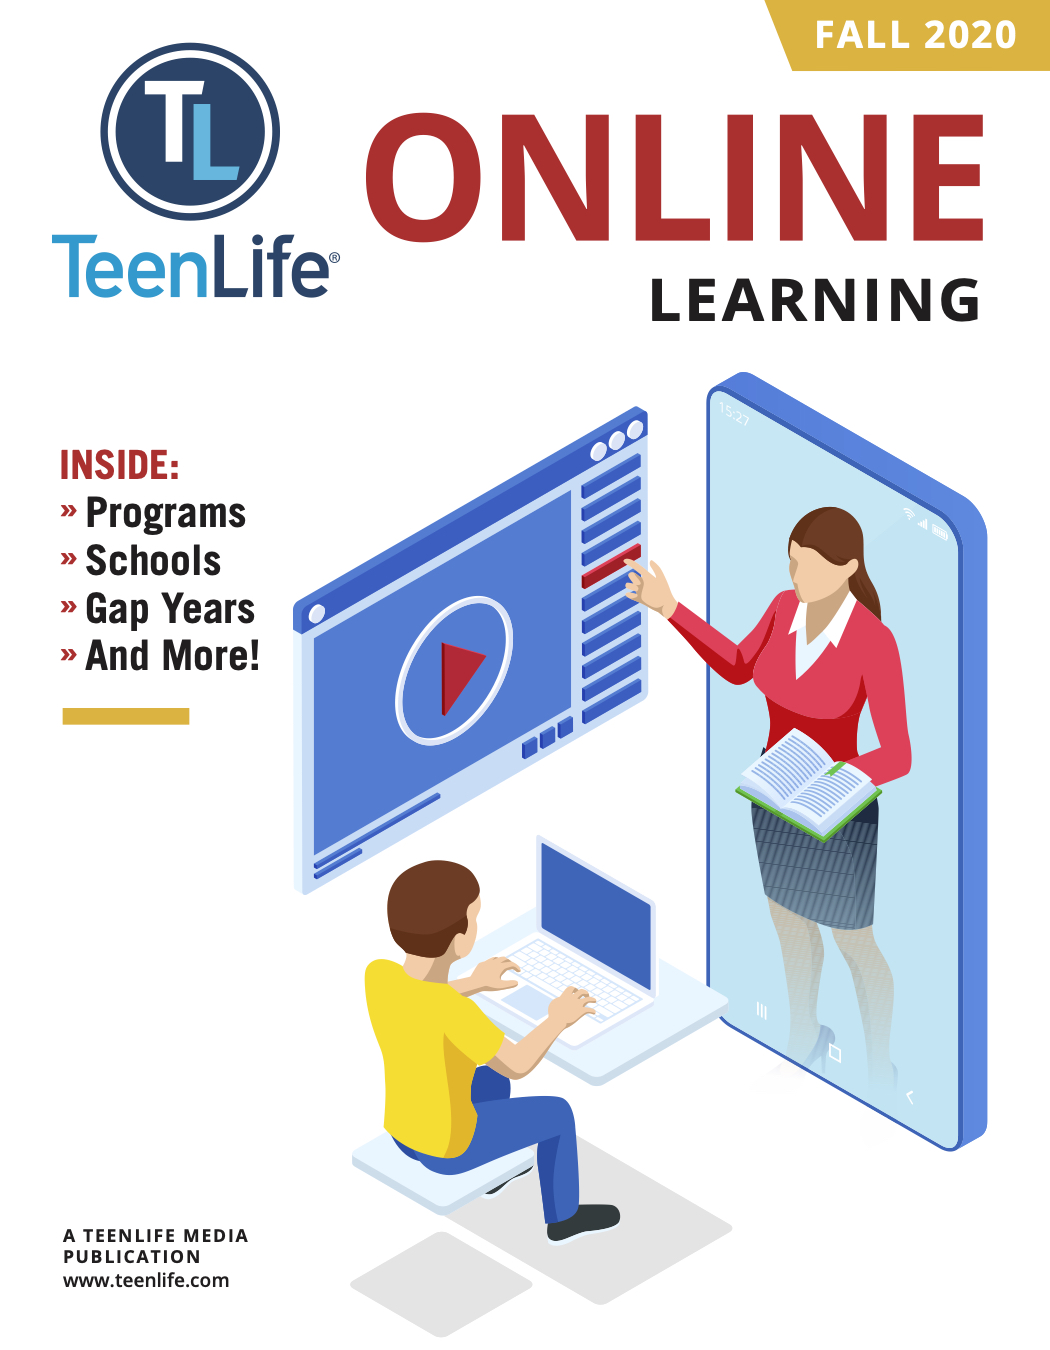 Guide to Online Learning Fall 2020-TeenLife